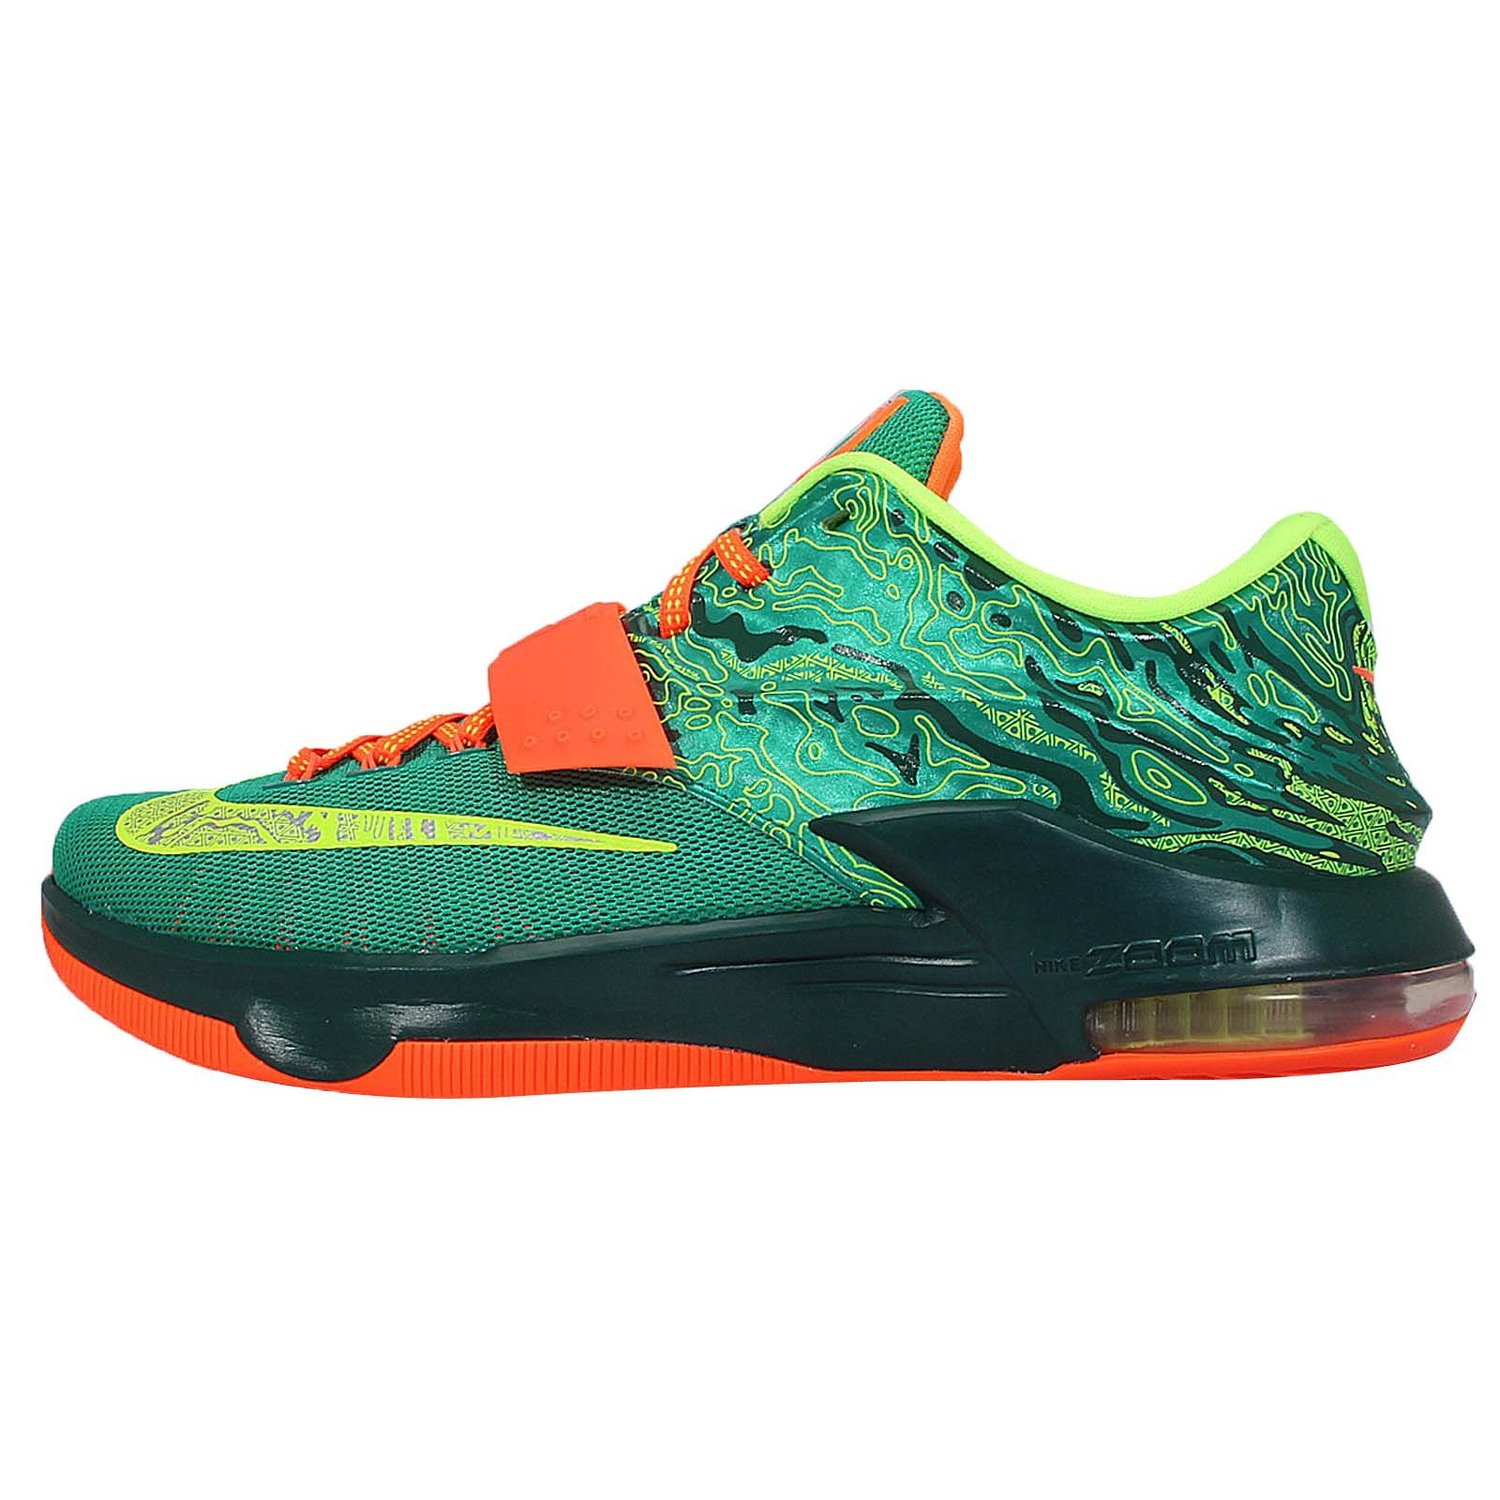 new product 5f4fb 6dcd9 Get Quotations · NIKE KD VII Kevin Durant Basketball Shoes 653997-303